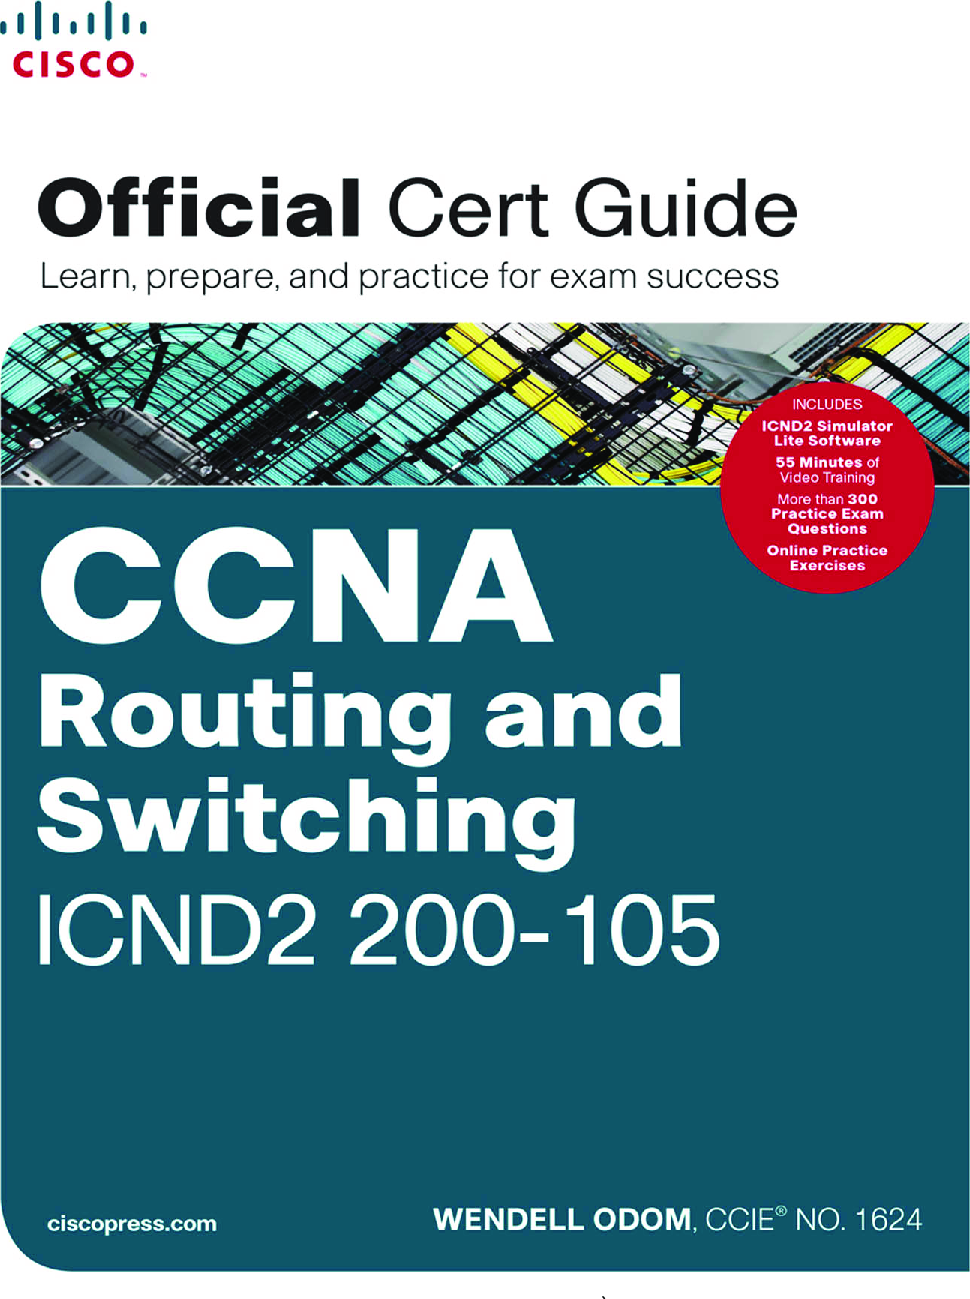 Ccna Routing And Switching Icnd2 200 105 Official Cert Guide Cisco Network Diagram Design Elements Routers Win Mac